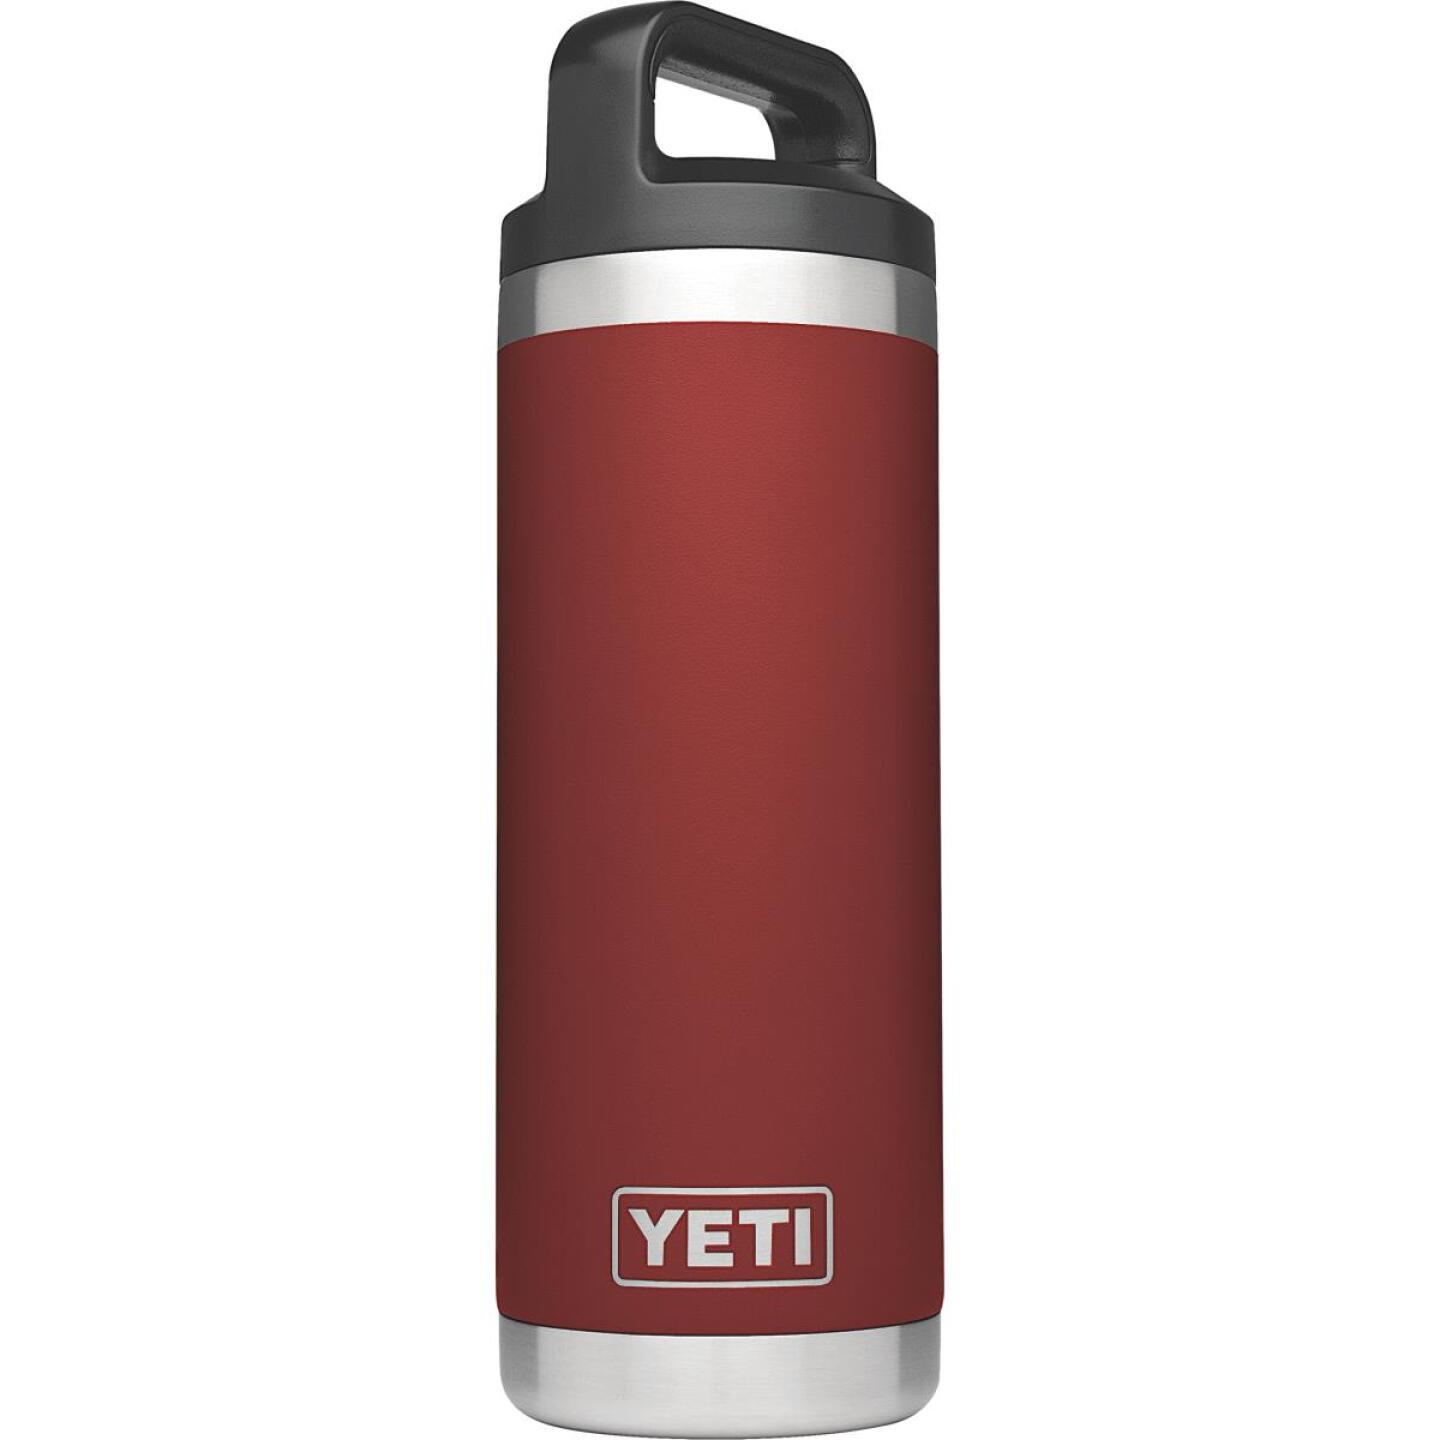 Yeti Rambler 18 Oz. Brick Red Stainless Steel Insulated Vacuum Bottle Image 1